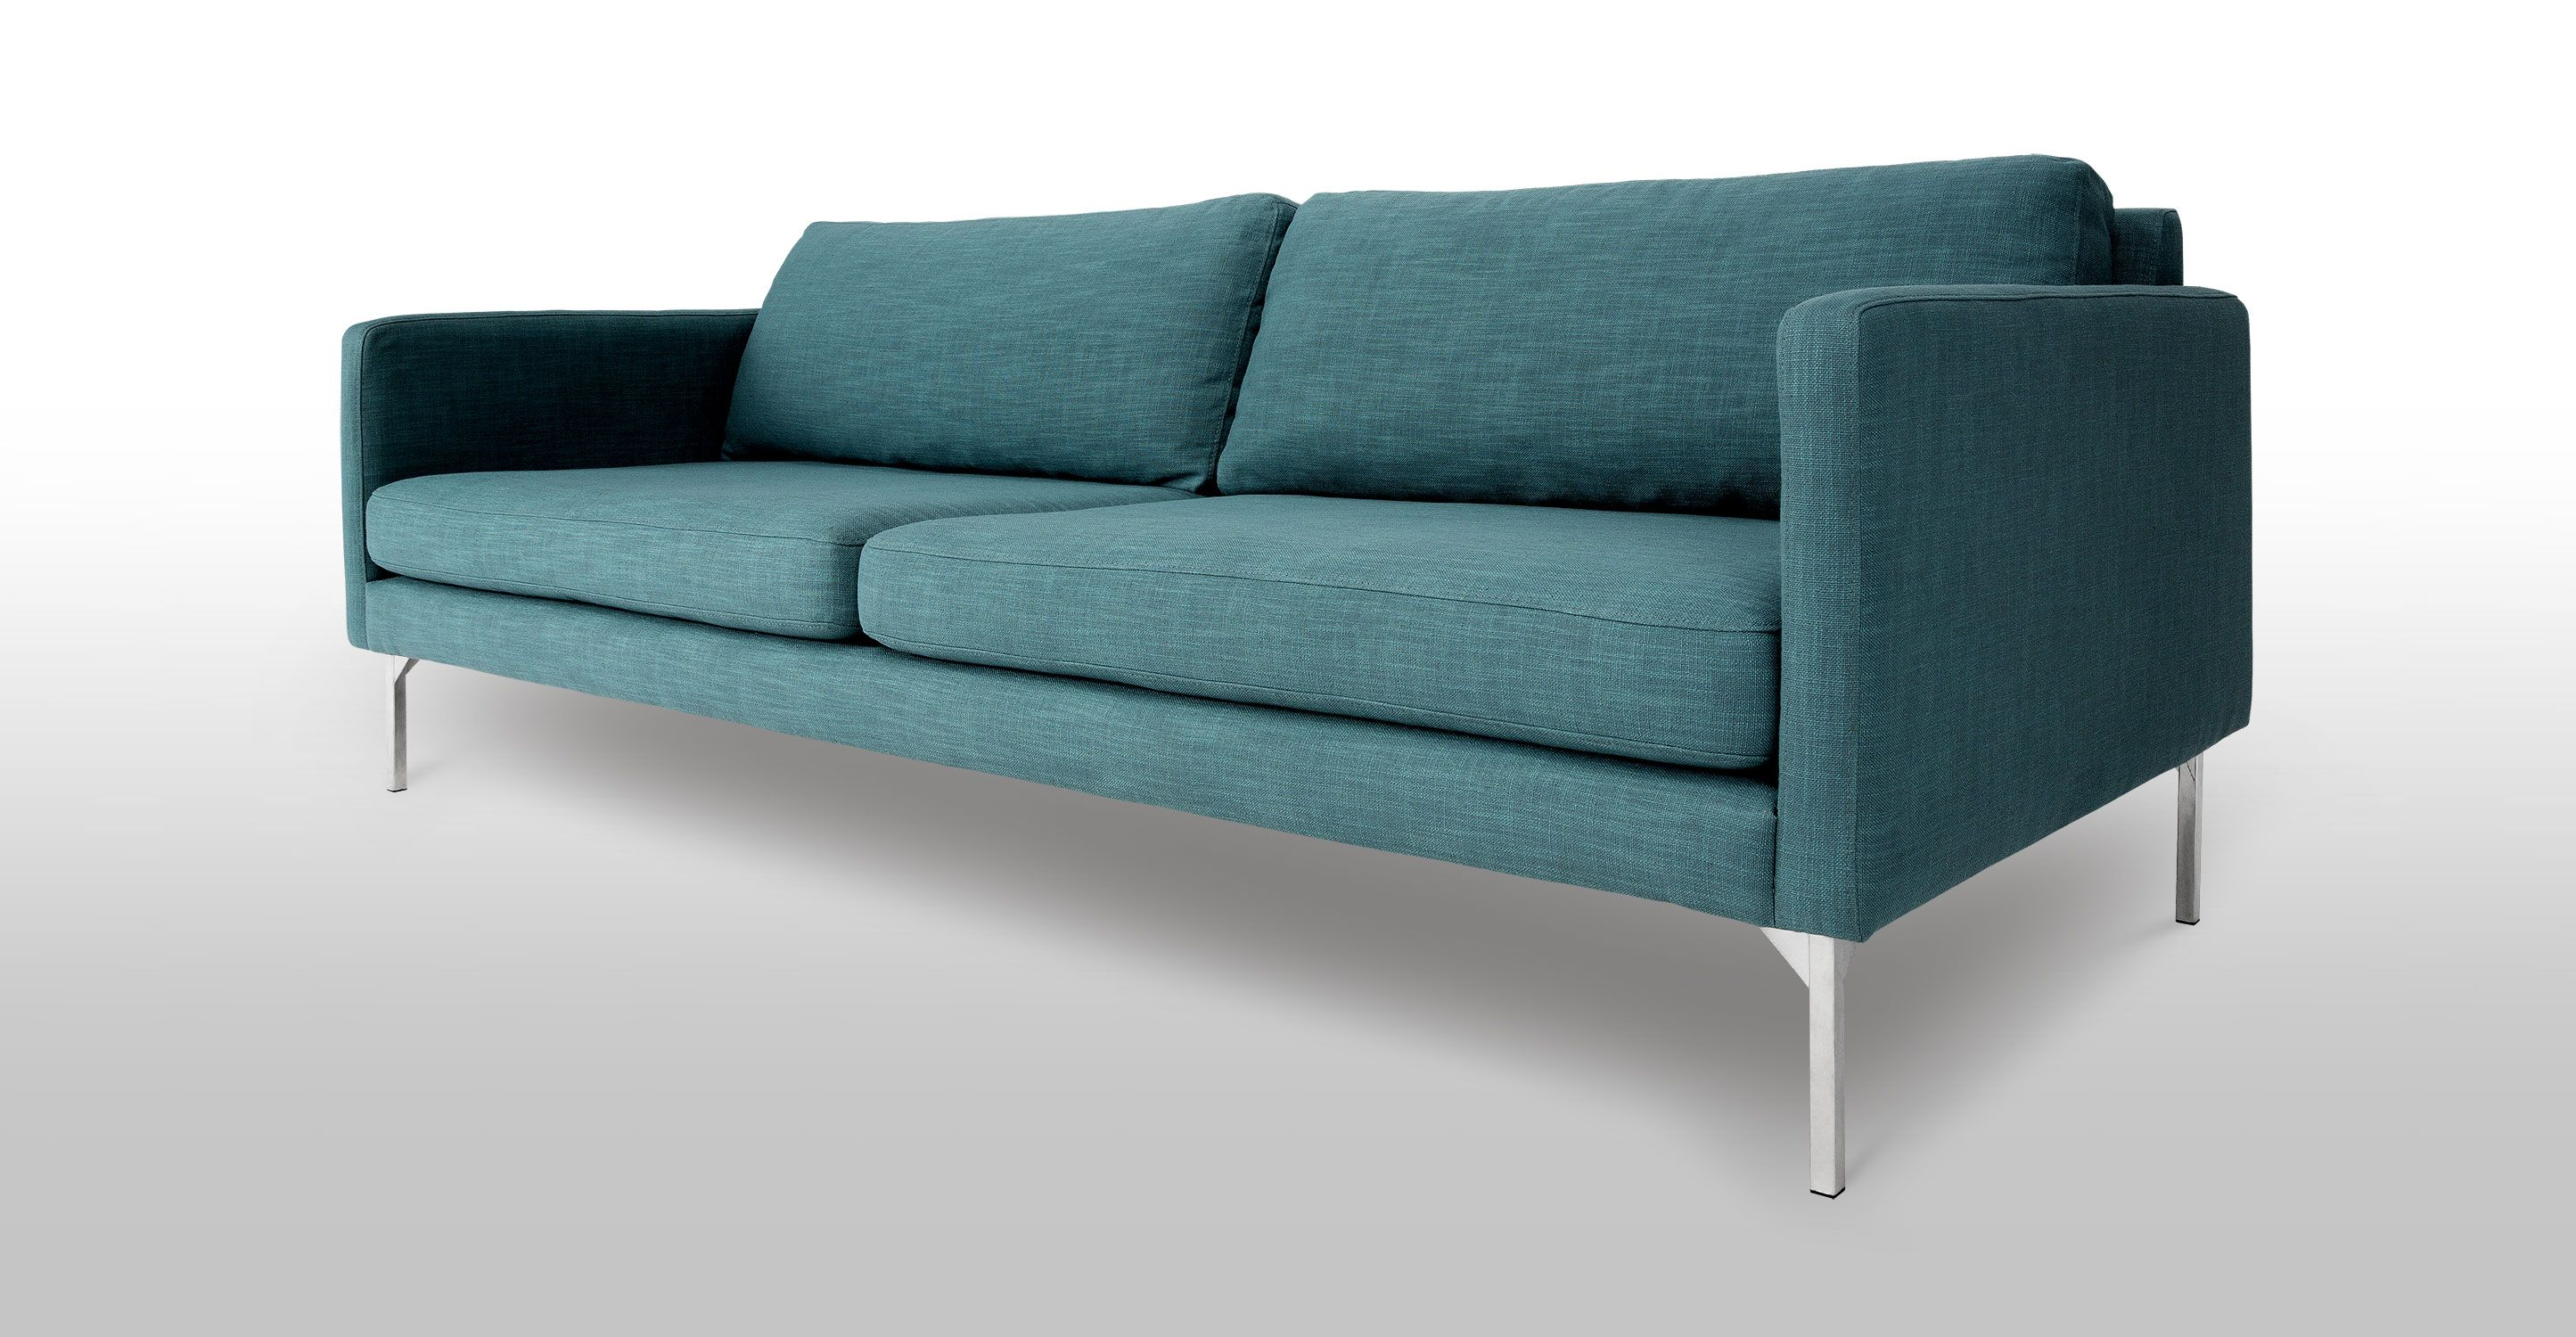 Sofa Article Xv Macy S Clare Blue 3 Seater With Steel Legs Echo